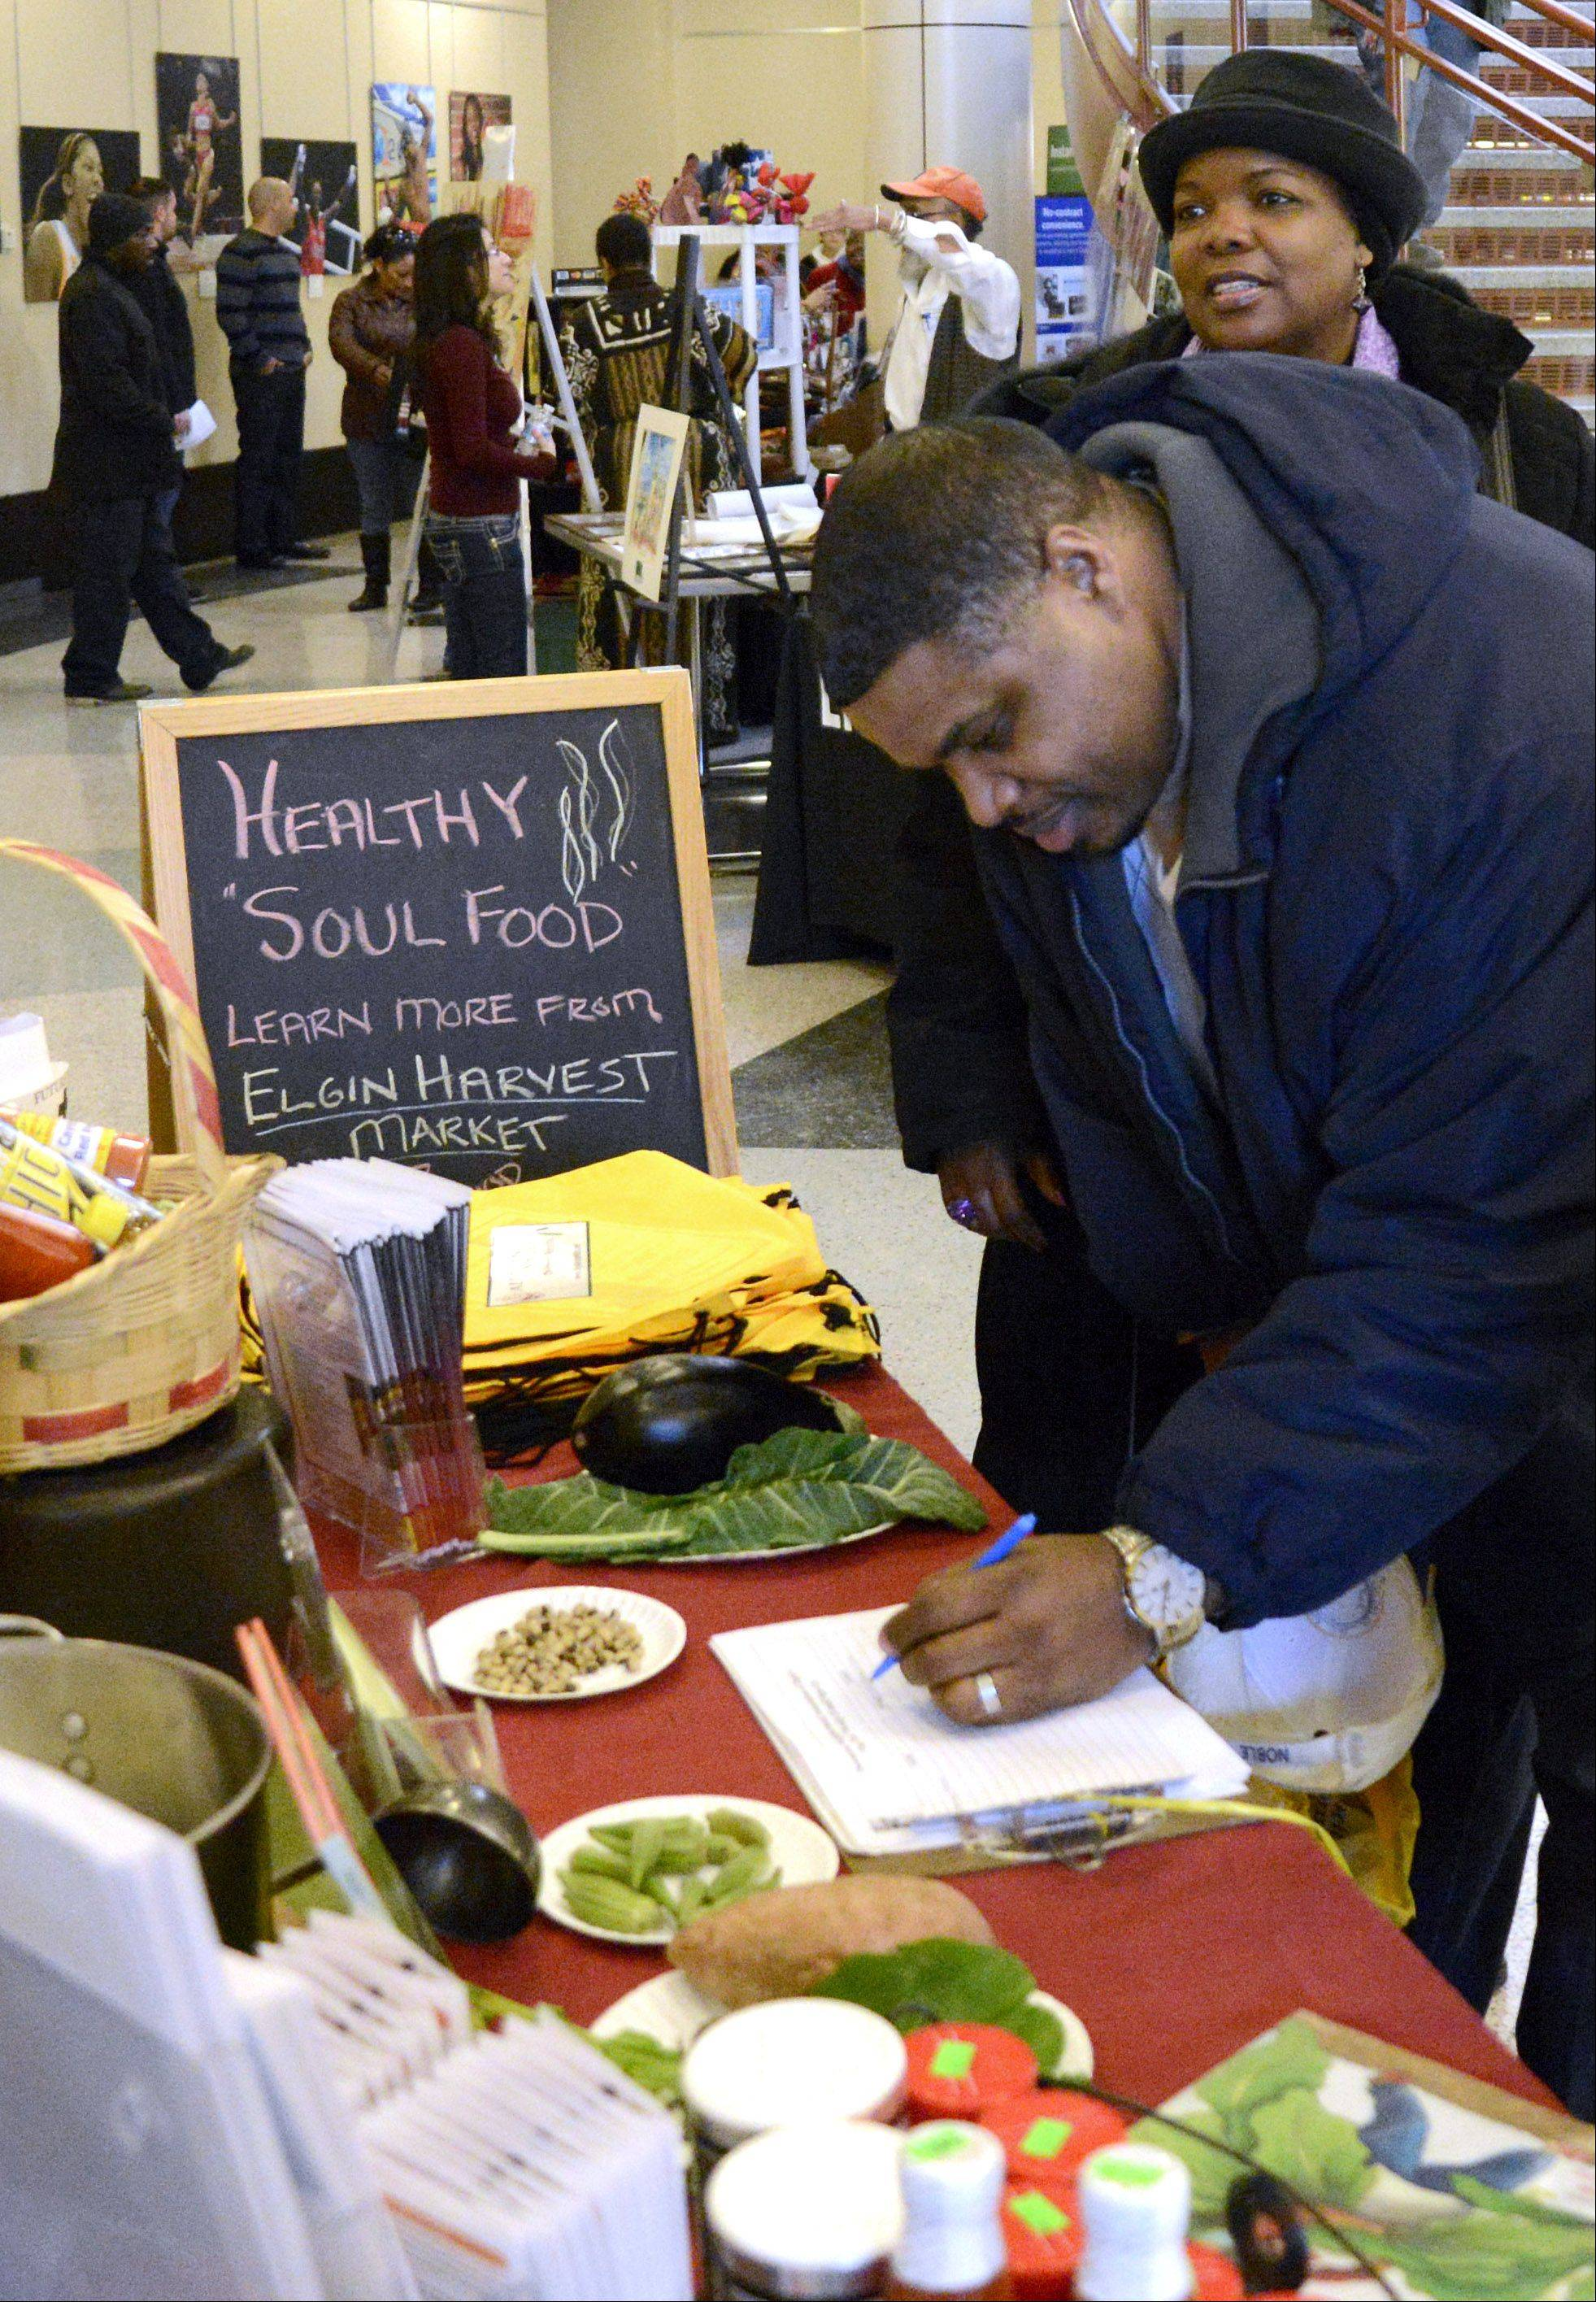 Elgin police Sgt. Gary Neal and his wife, Marilyn, of Huntley sign up to win a basket full of goodies at the Elgin Harvest Market's Healthy Soul Food table at the eighth annual Black History Family Festival at the Gail Borden Public Library in Elgin.